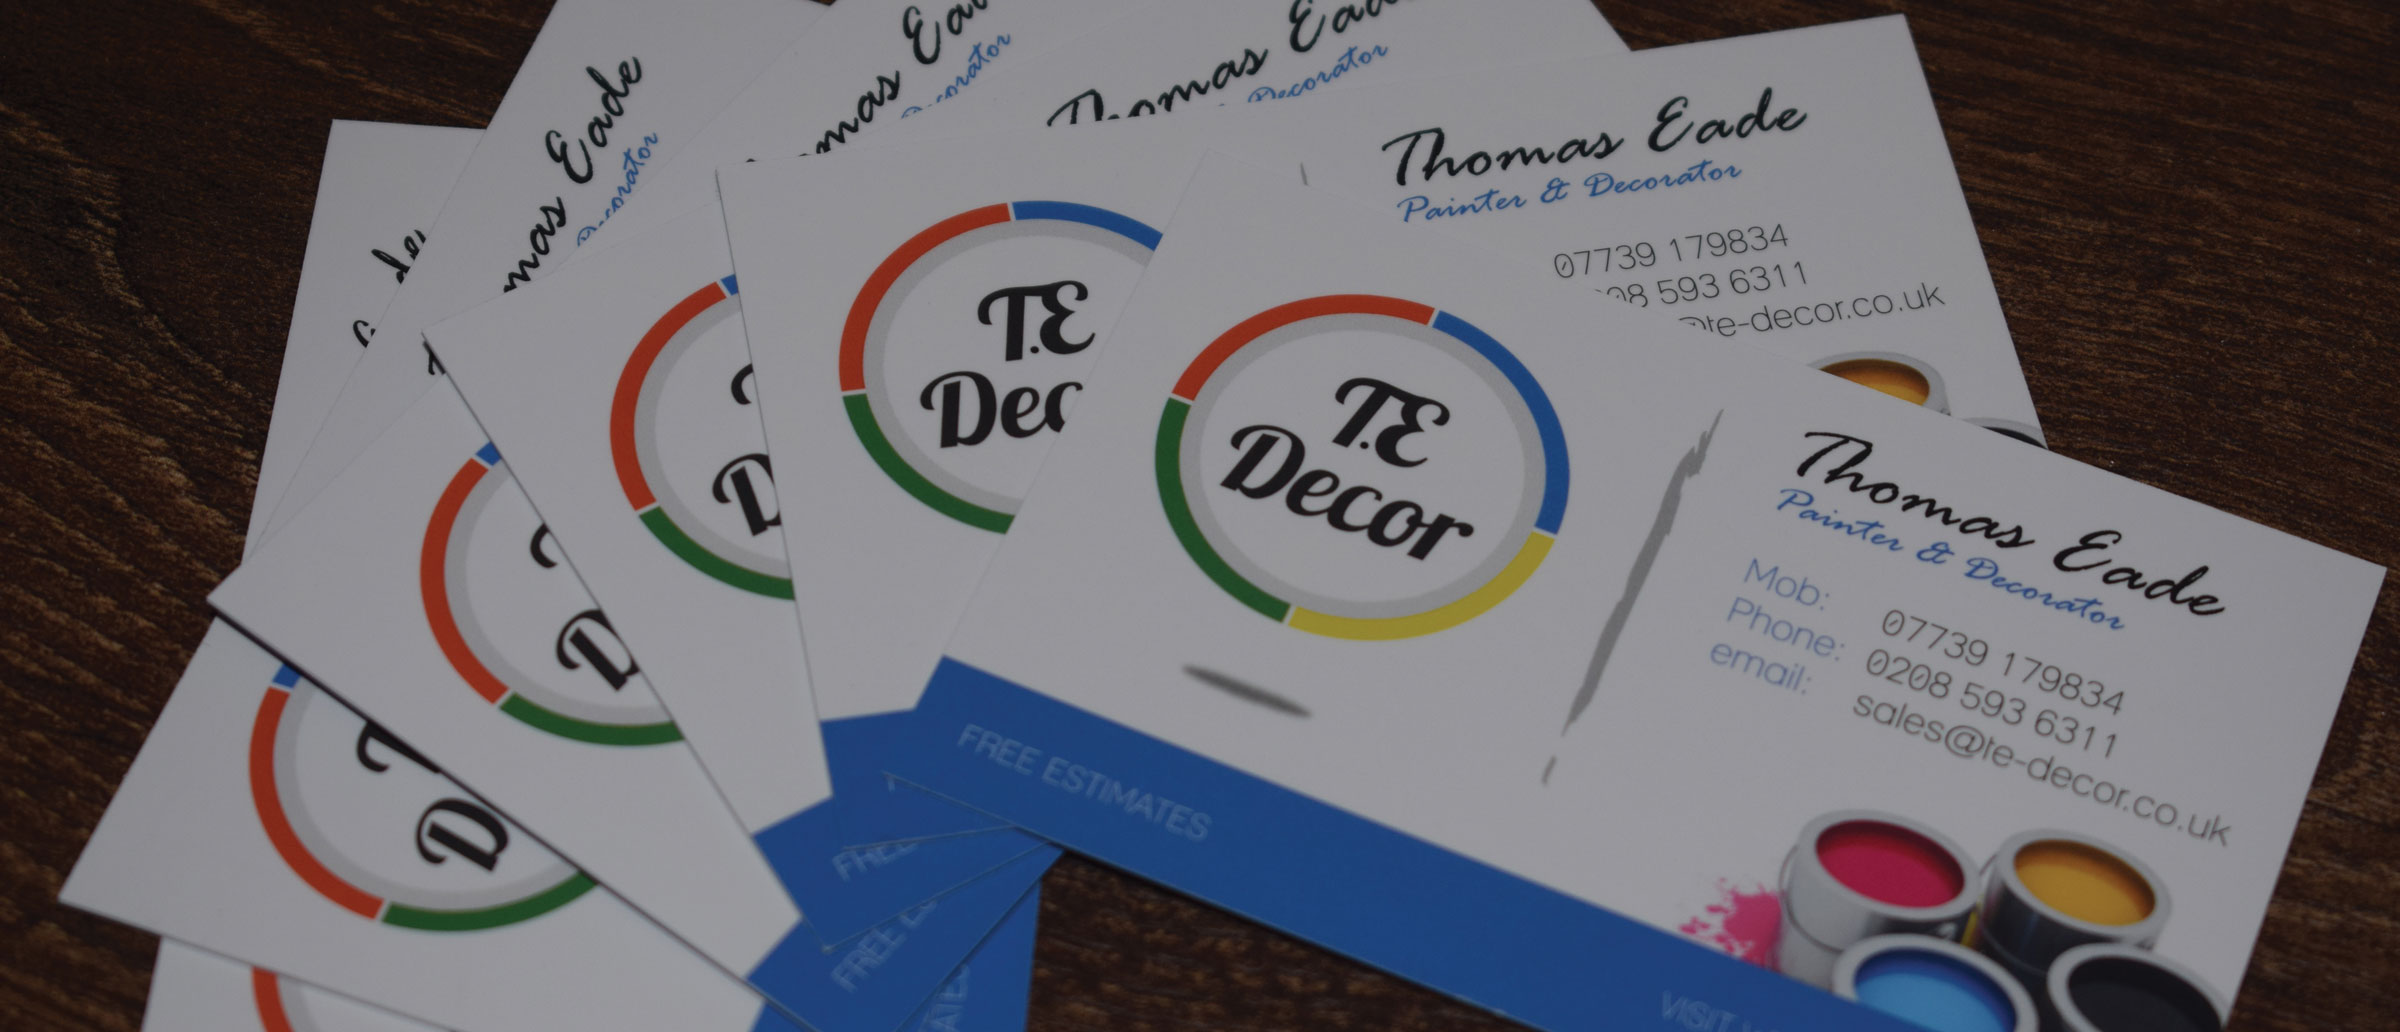 Business Card Design and Printing - Romford Web Design